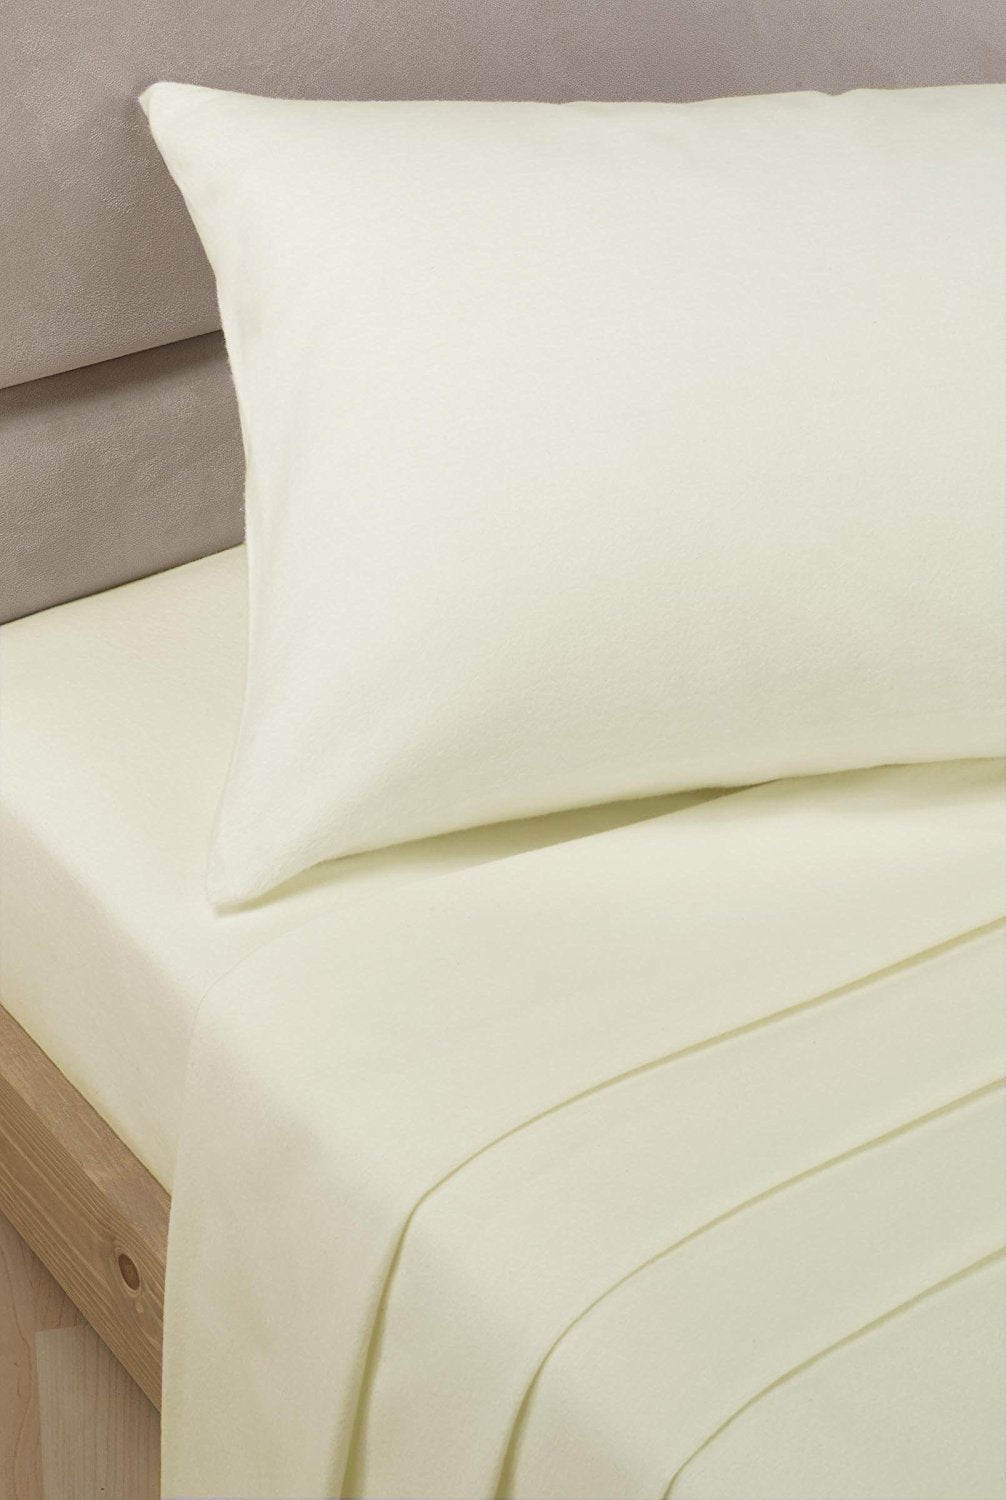 Ivory Percale/Polycotton Flat Sheet  180 TC by Rapport